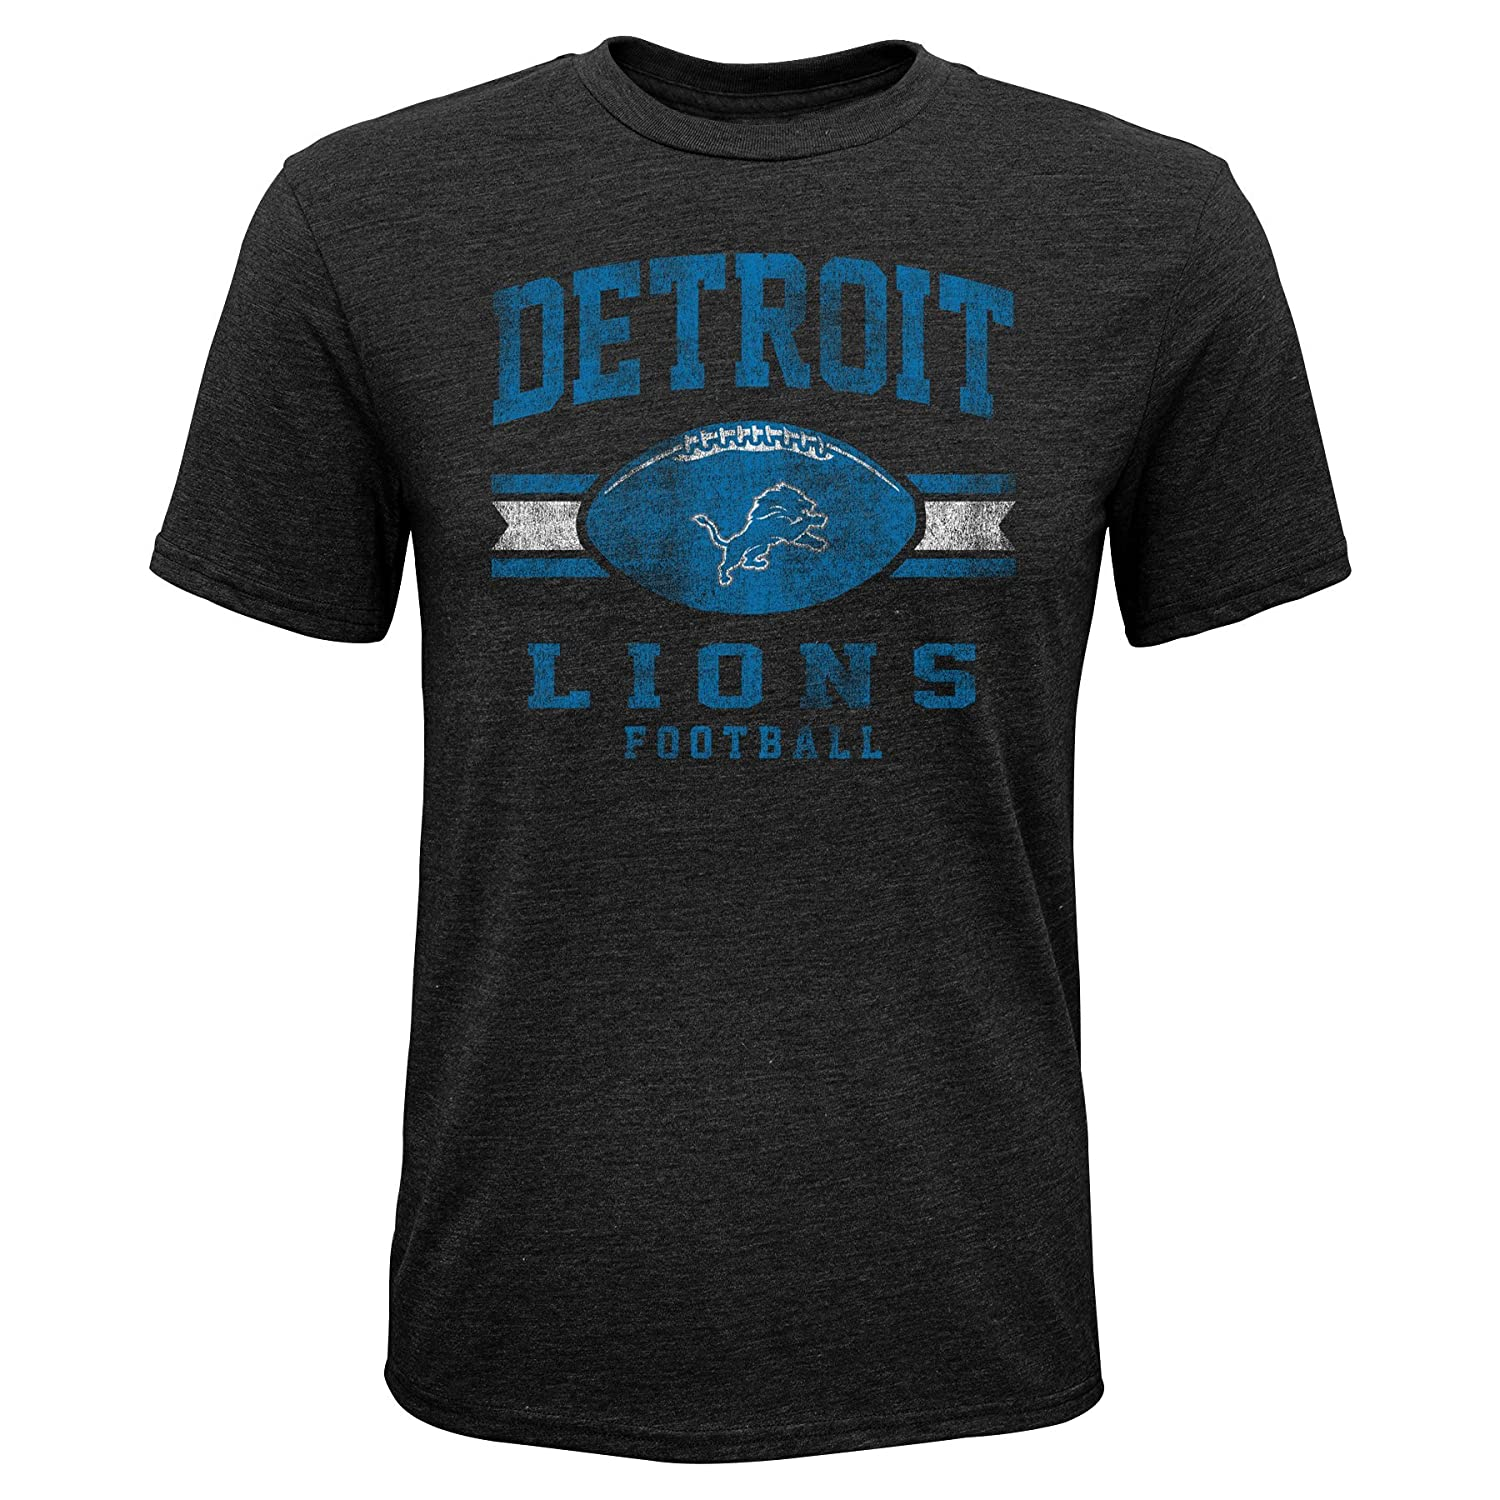 Black 14-16 Youth Large NFL by outerstuff NFL Detroit Lions Youth Boys Player Pride Short Sleeve Tri-blend Tee